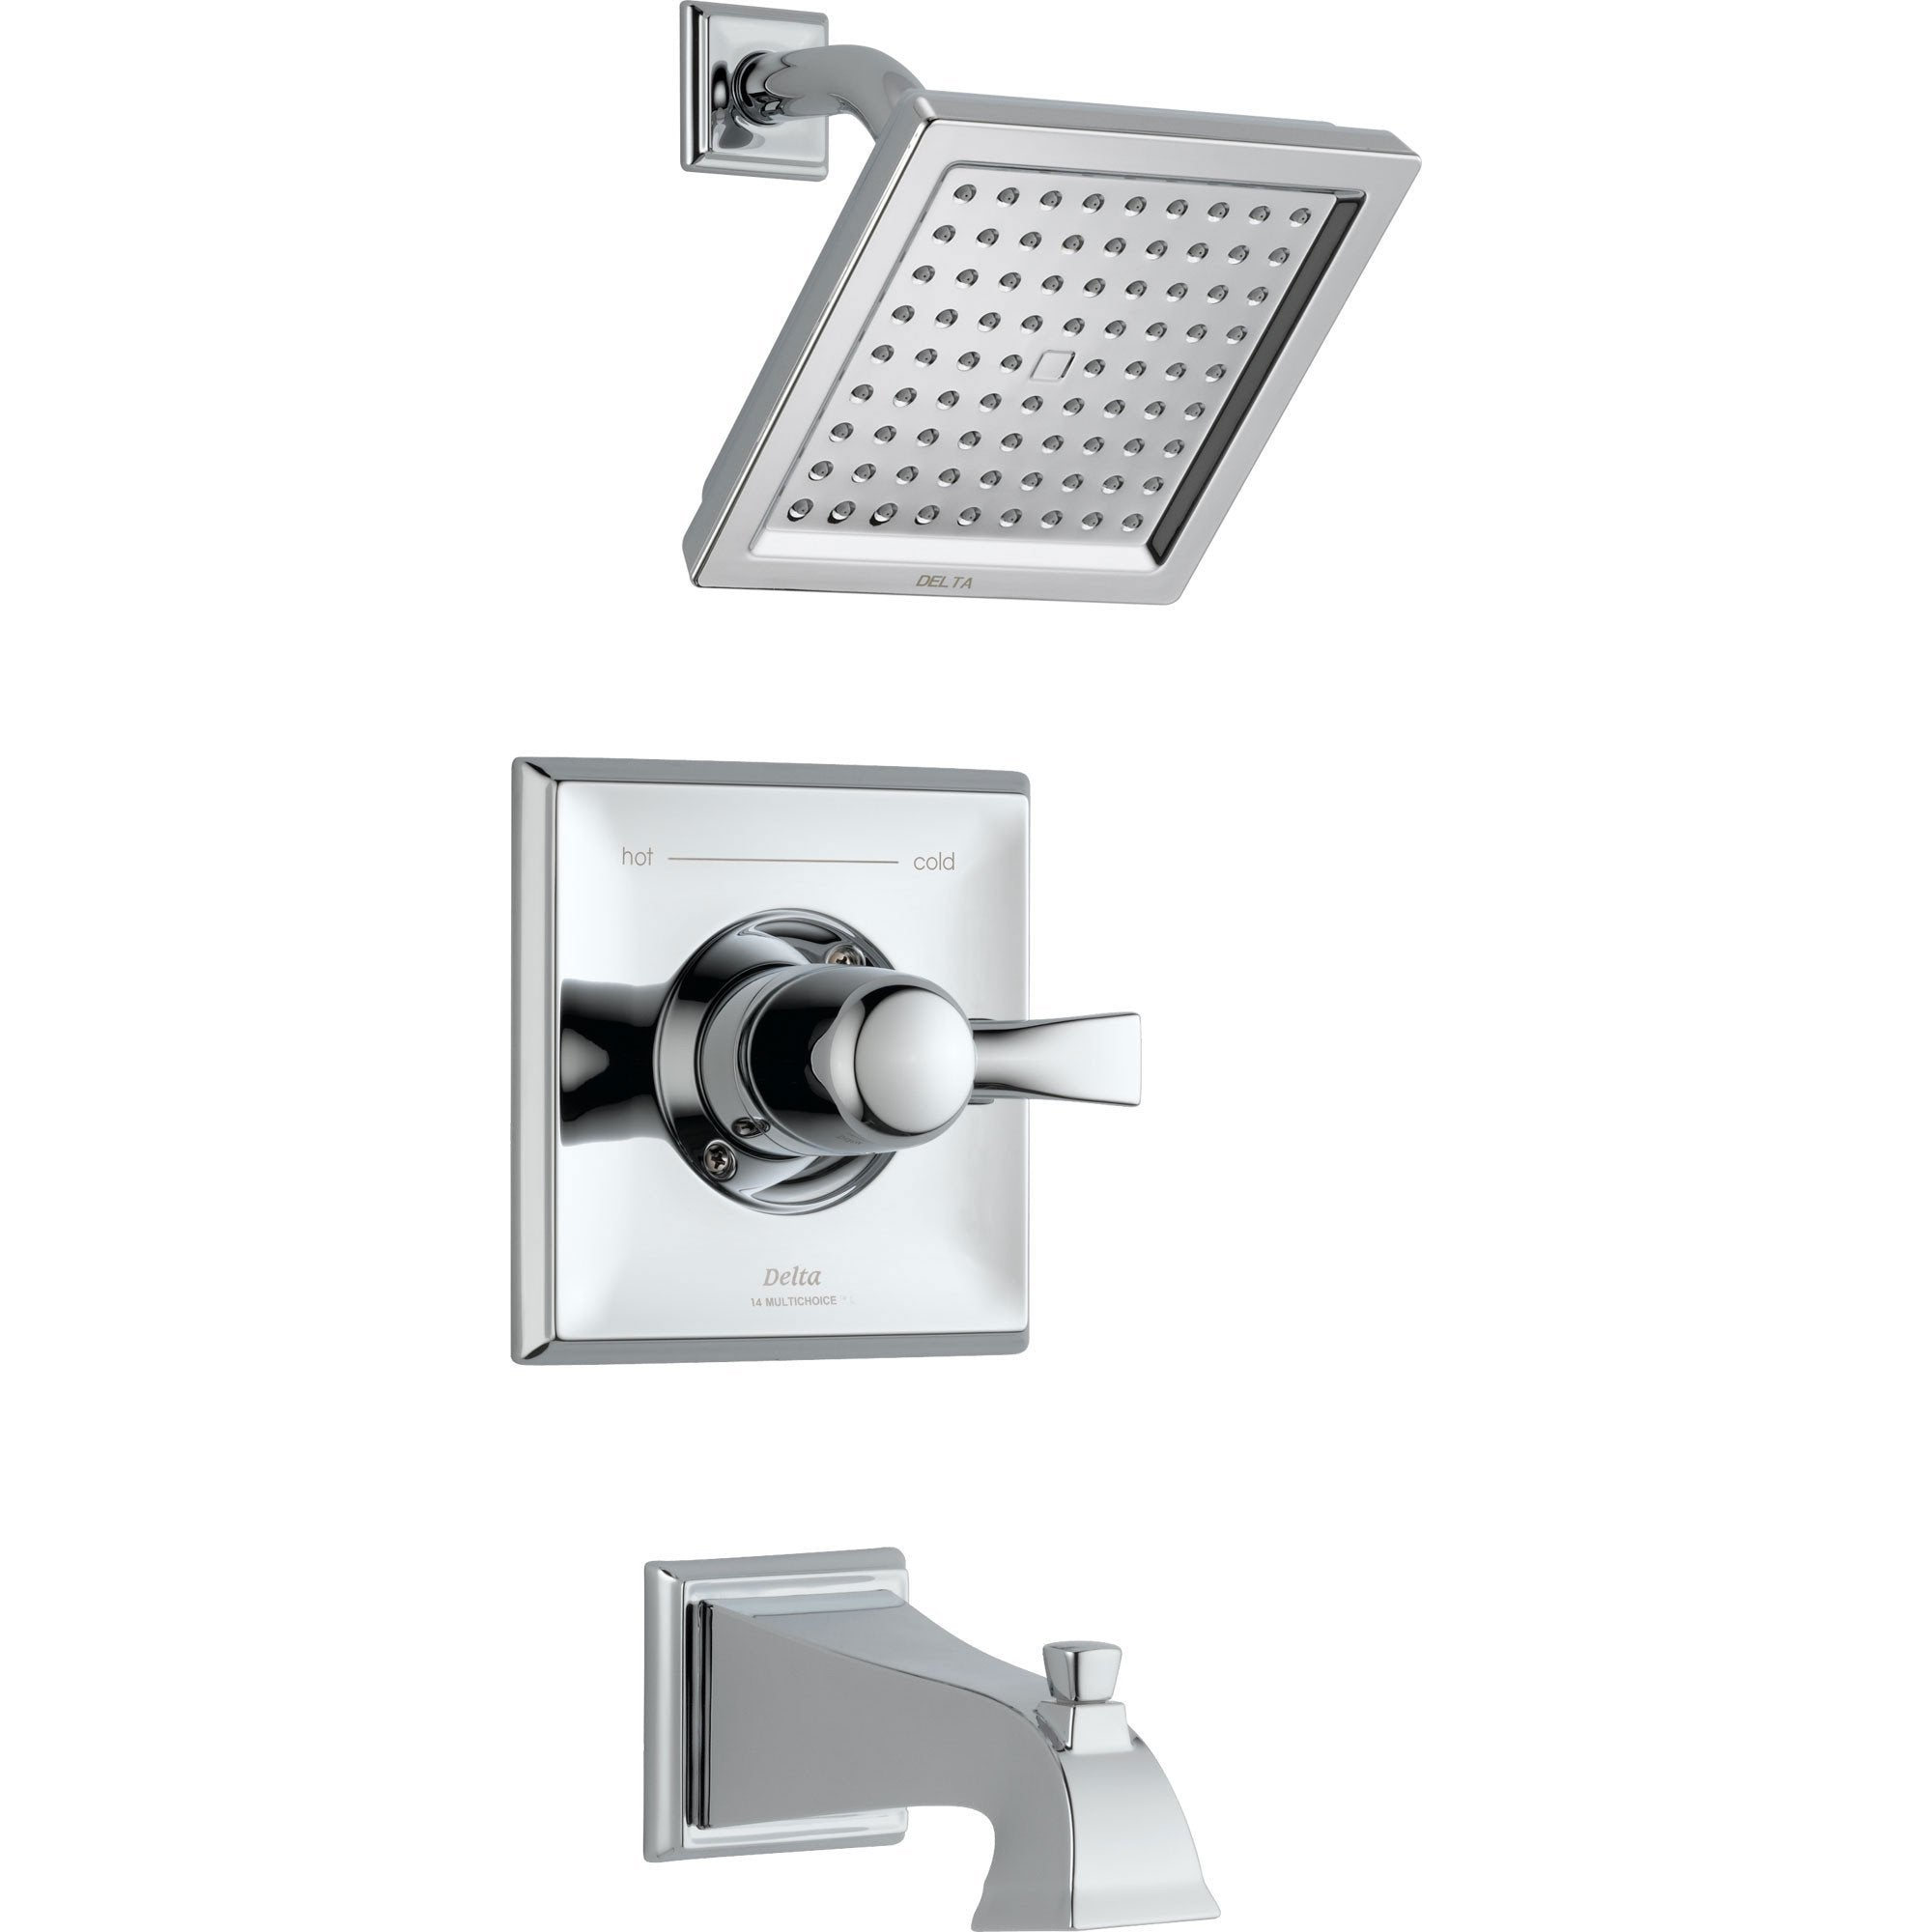 Delta Dryden Modern Square Chrome Tub and Shower Faucet Trim Kit 456077